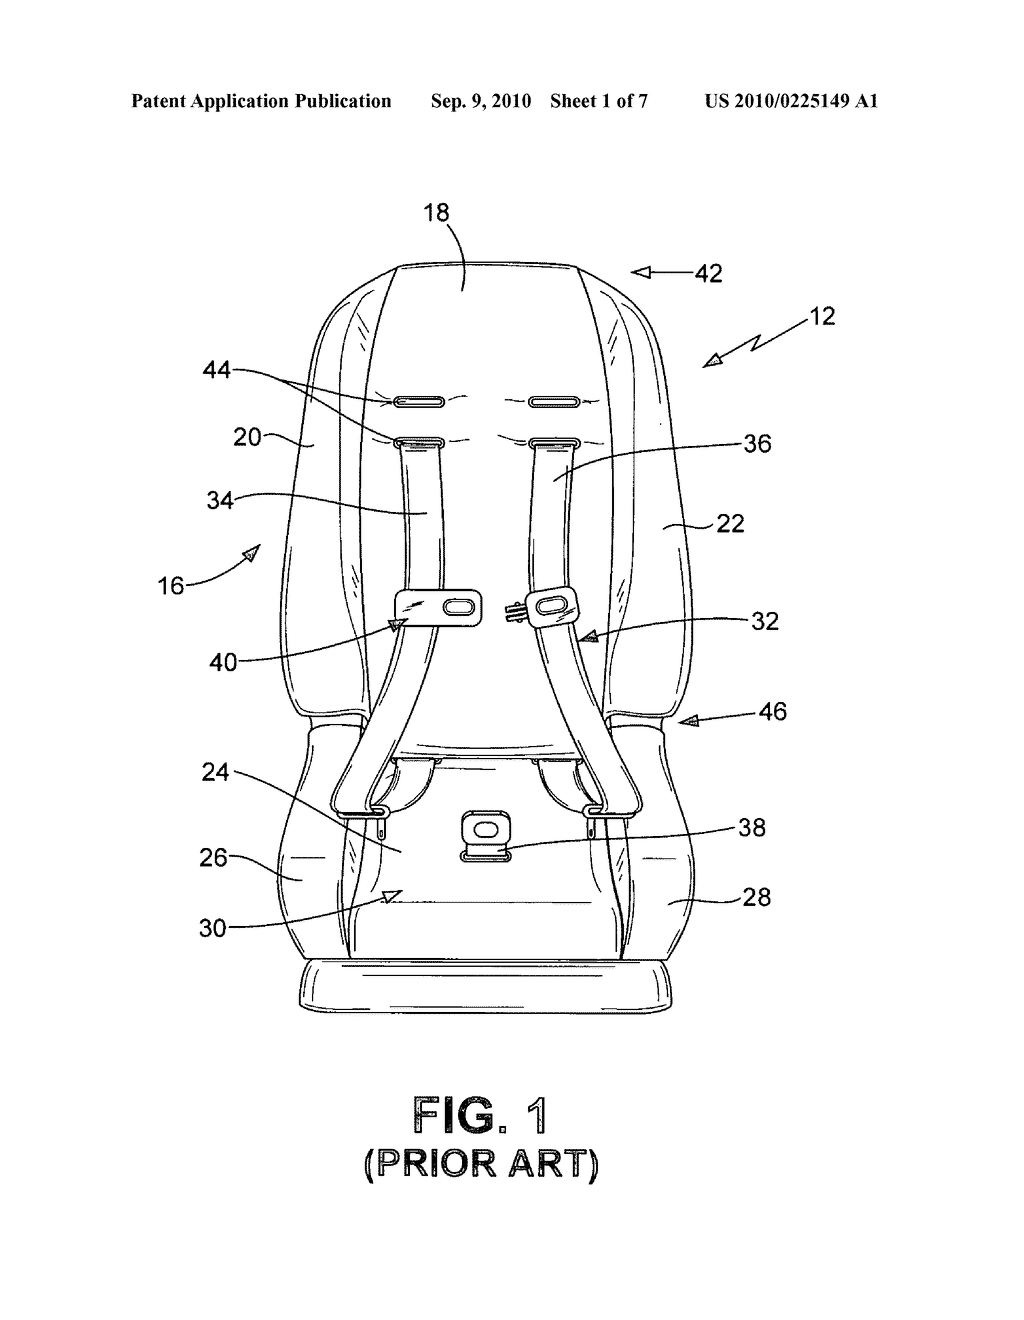 head support apparatus for child car seats diagram, schematic, and Car Seat Dimensions Diagram head support apparatus for child car seats diagram, schematic, and image 02